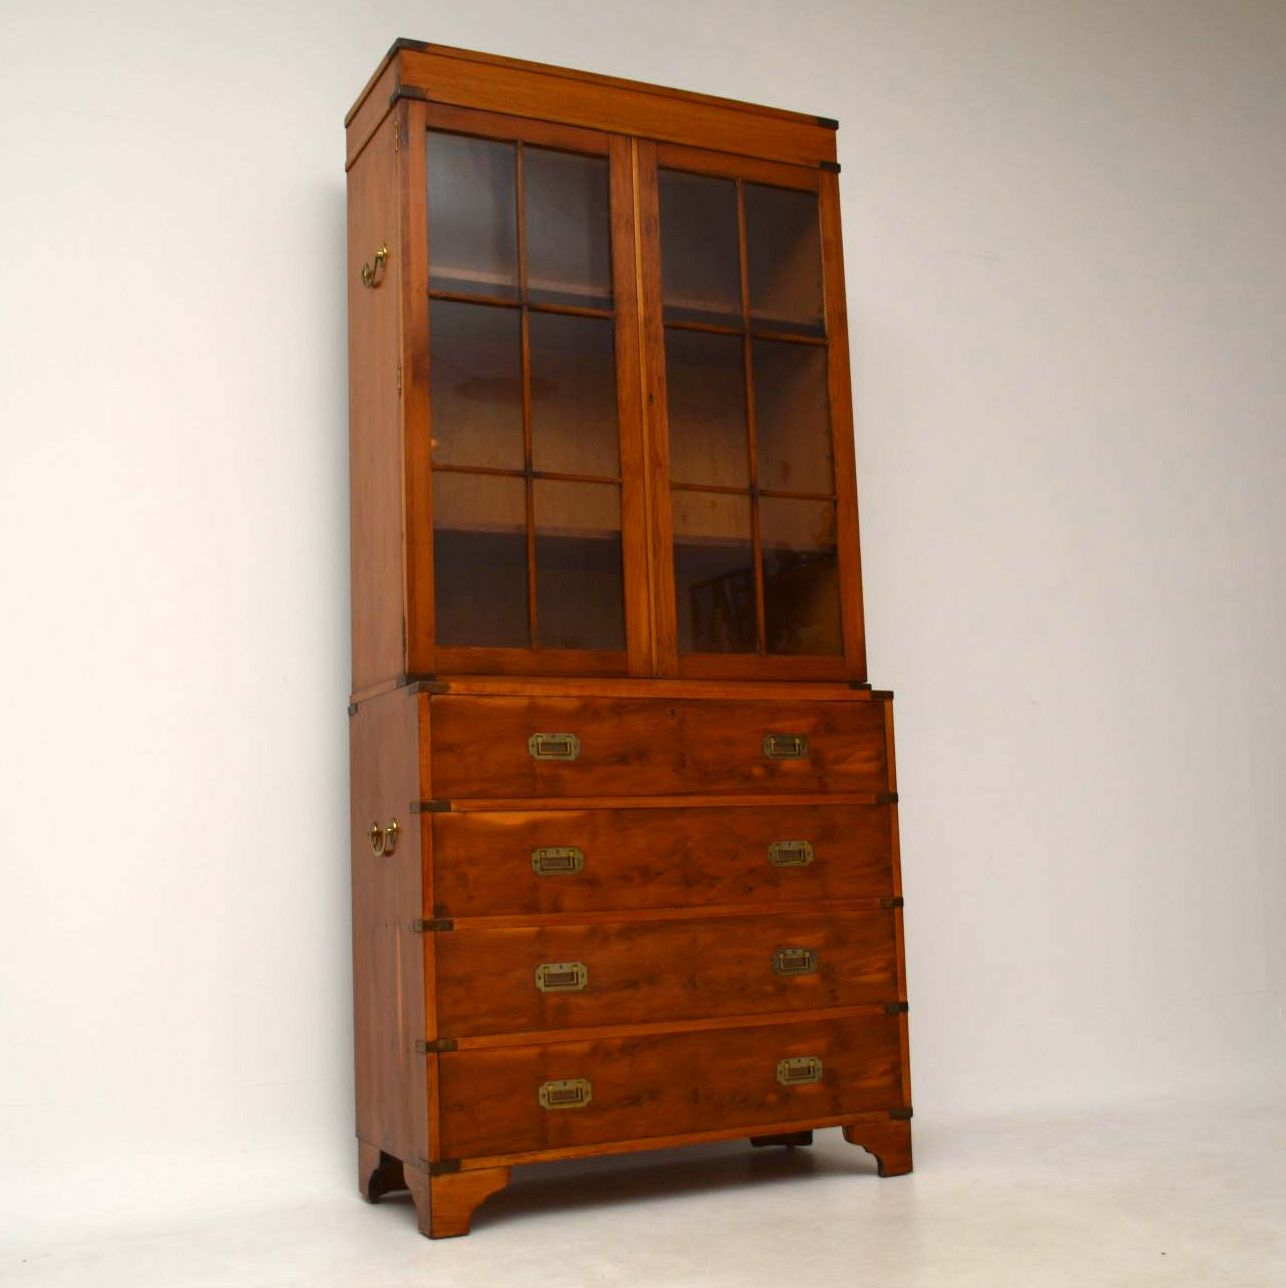 Antique Campaign Style Yew Wood Secretaire Bookcase